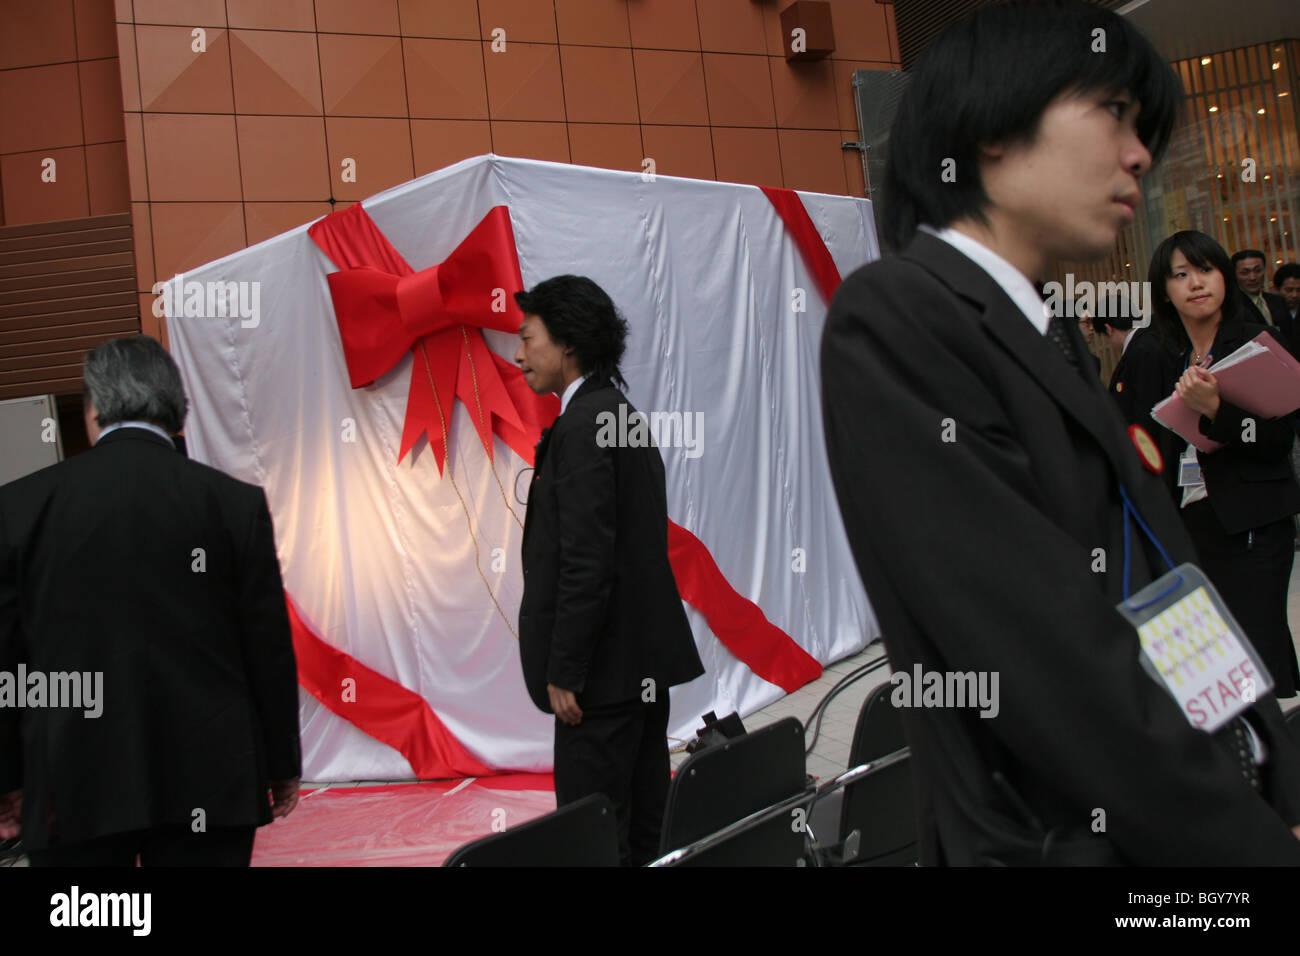 Product advertising wrapped as large present, Tokyo, Japan, on Wednesday, Nov. 22, 2006. - Stock Image